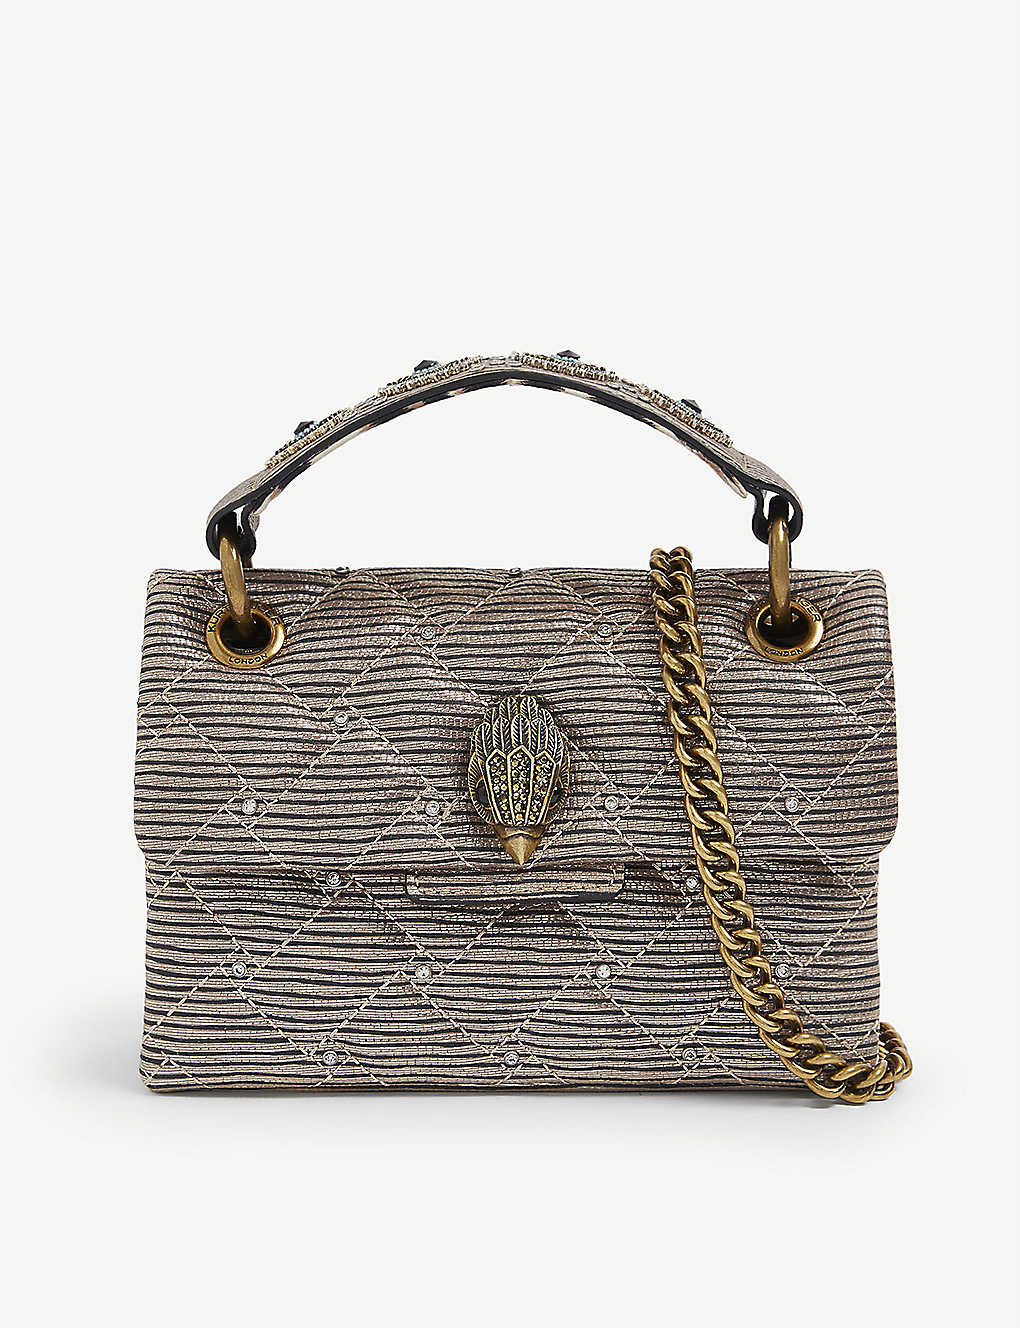 KURT GEIGER LONDON: Kensington mini embellished tweed shoulder bag